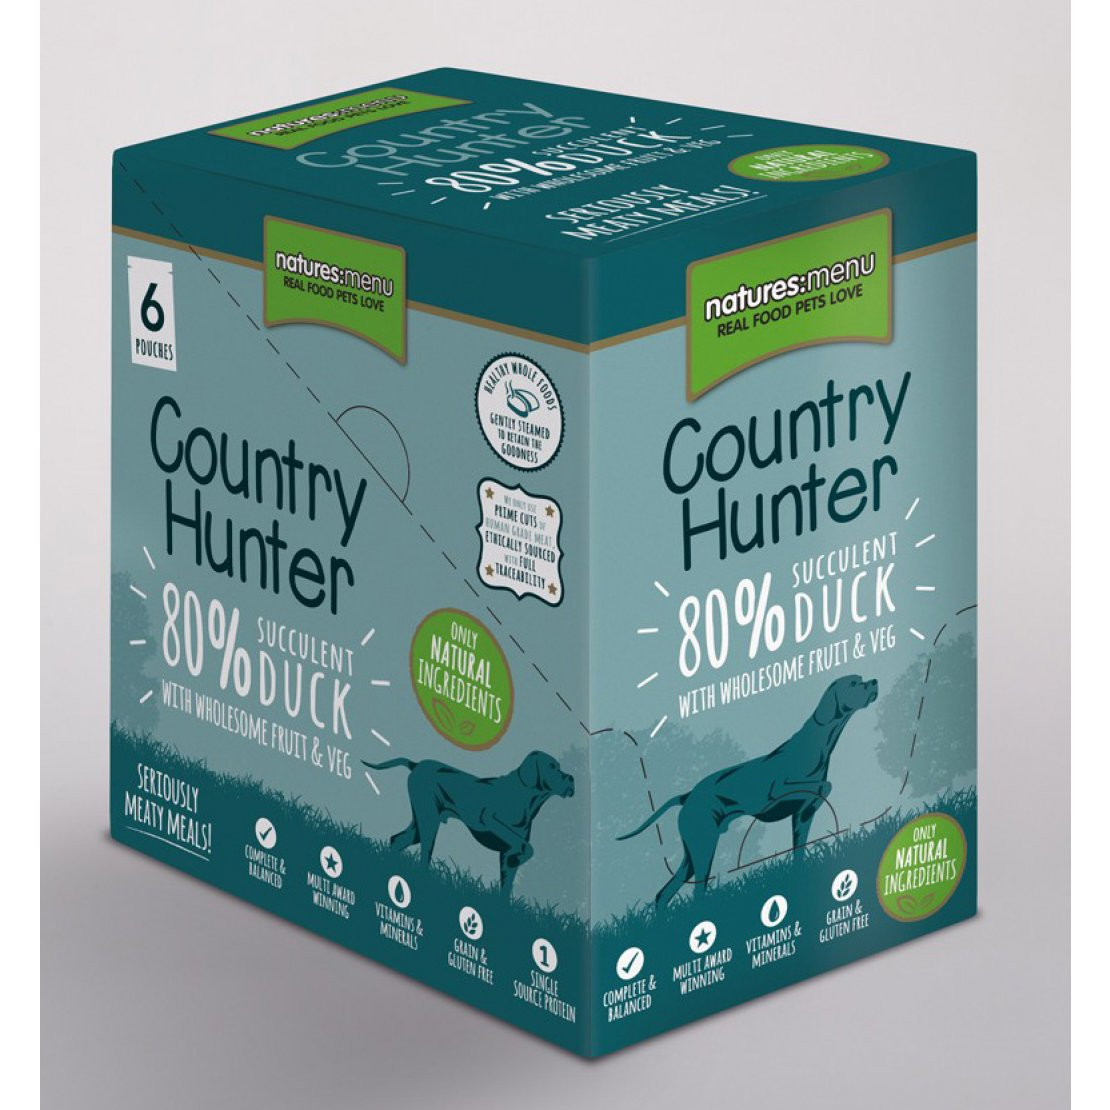 ONLY AVAILABLE FOR LOCAL DELIVERY. Country Hunter Dog Food Pouch. Duck. 6Pk